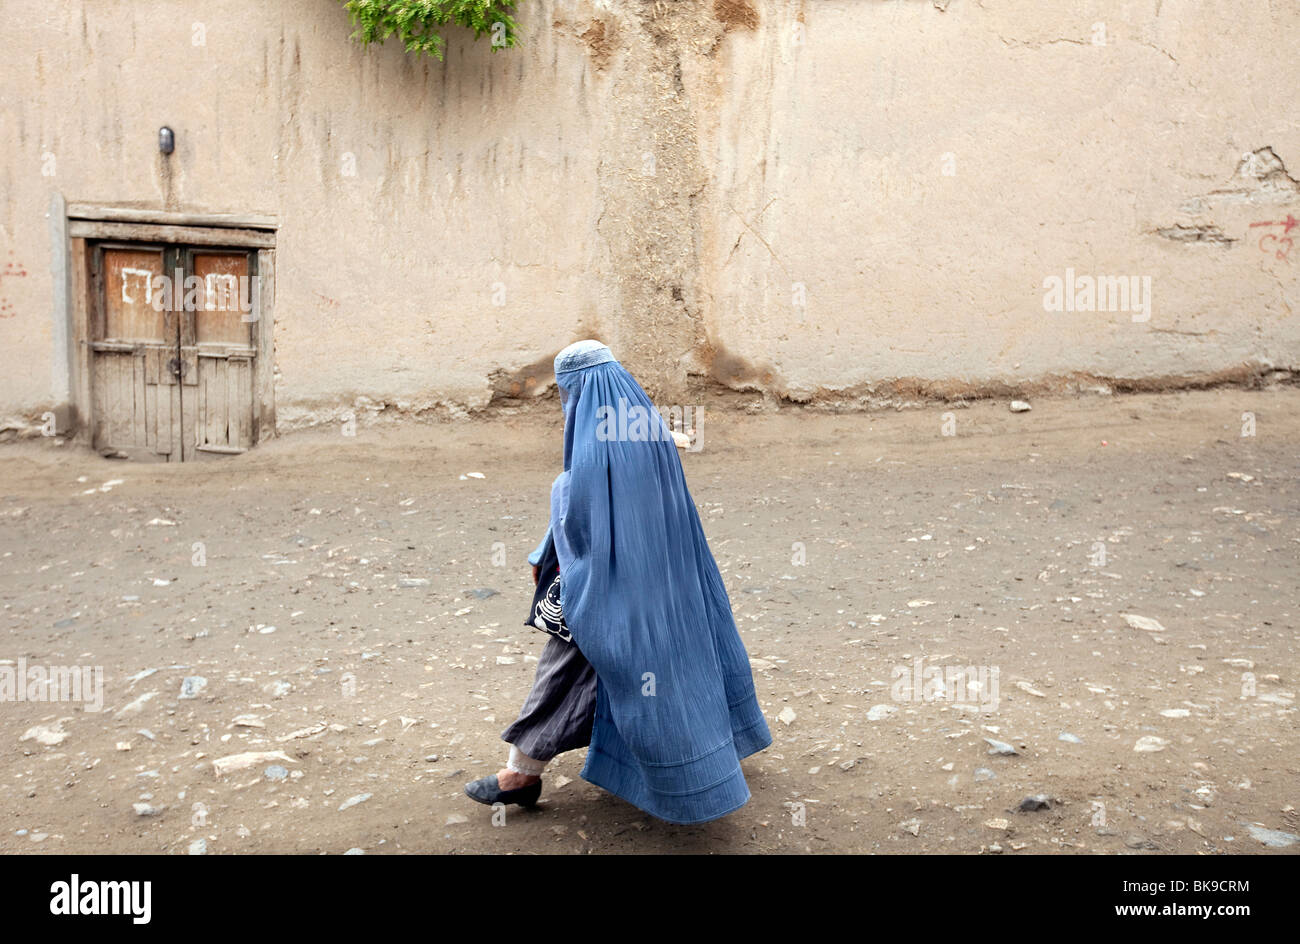 A burqua clad woman walks the laneways of Kabul Afghanistan. - Stock Image